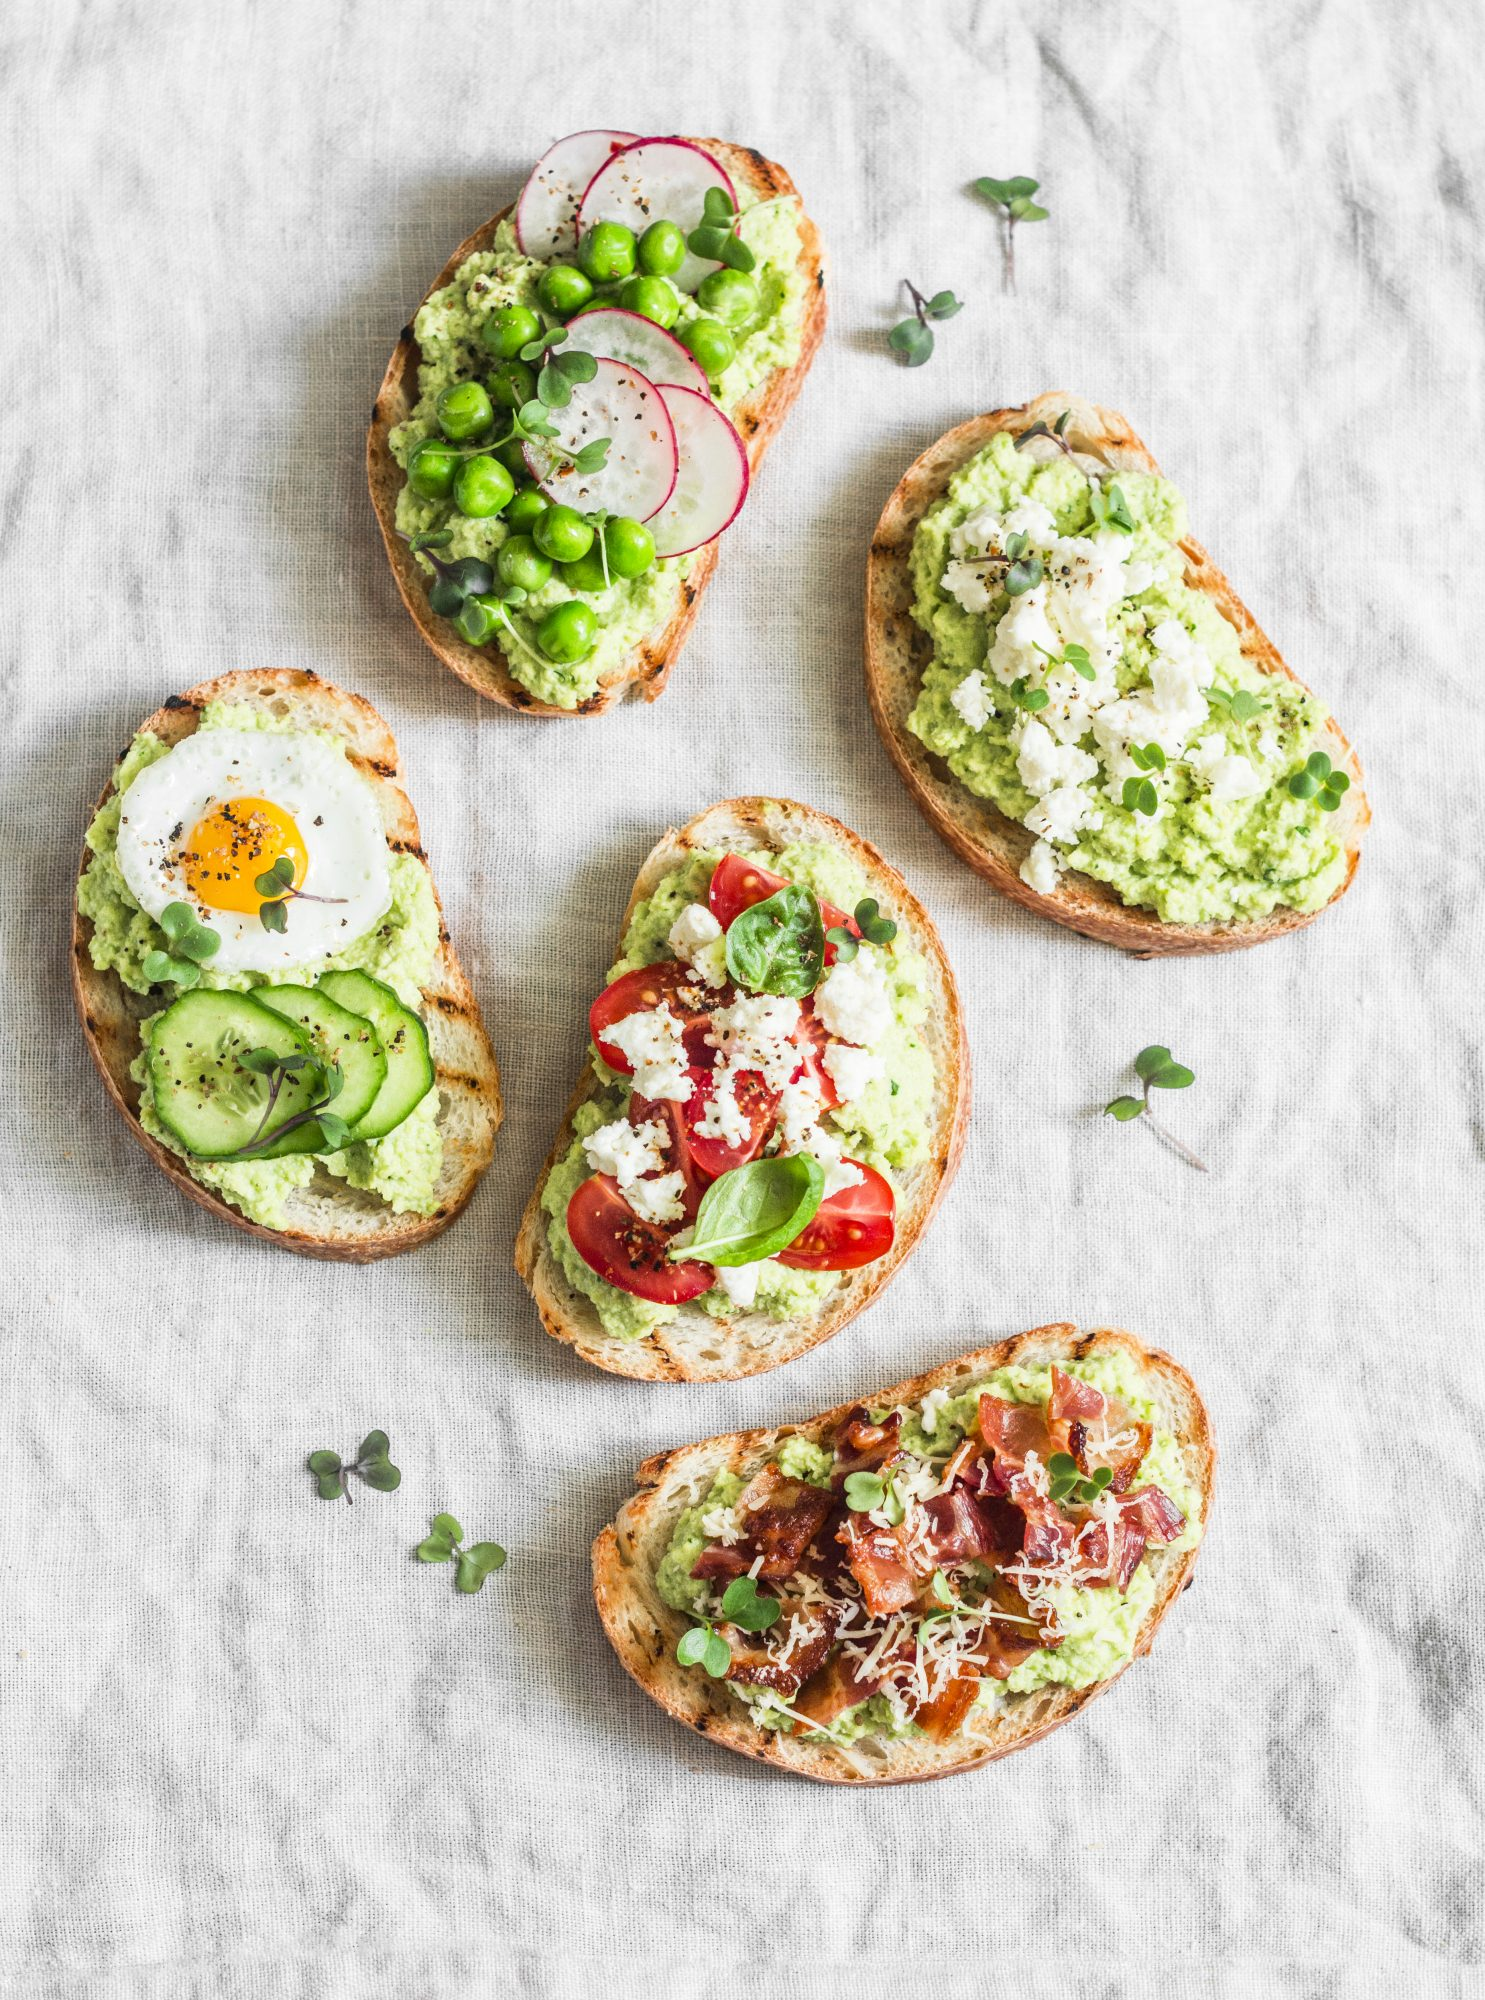 Tostadas con aguacate, tomate y tocino